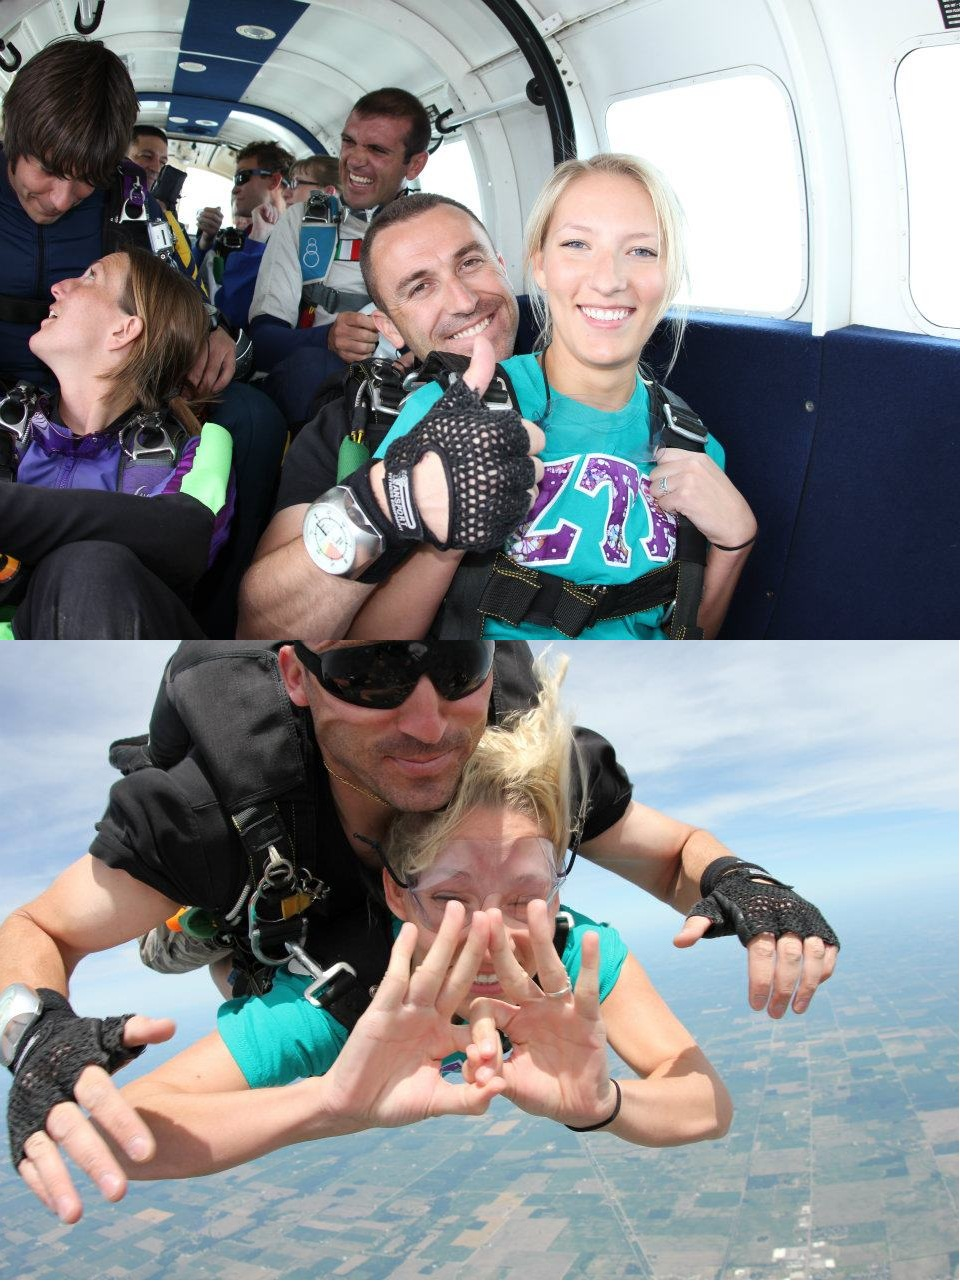 Throwing your sign while skydiving...in letters. TSM.